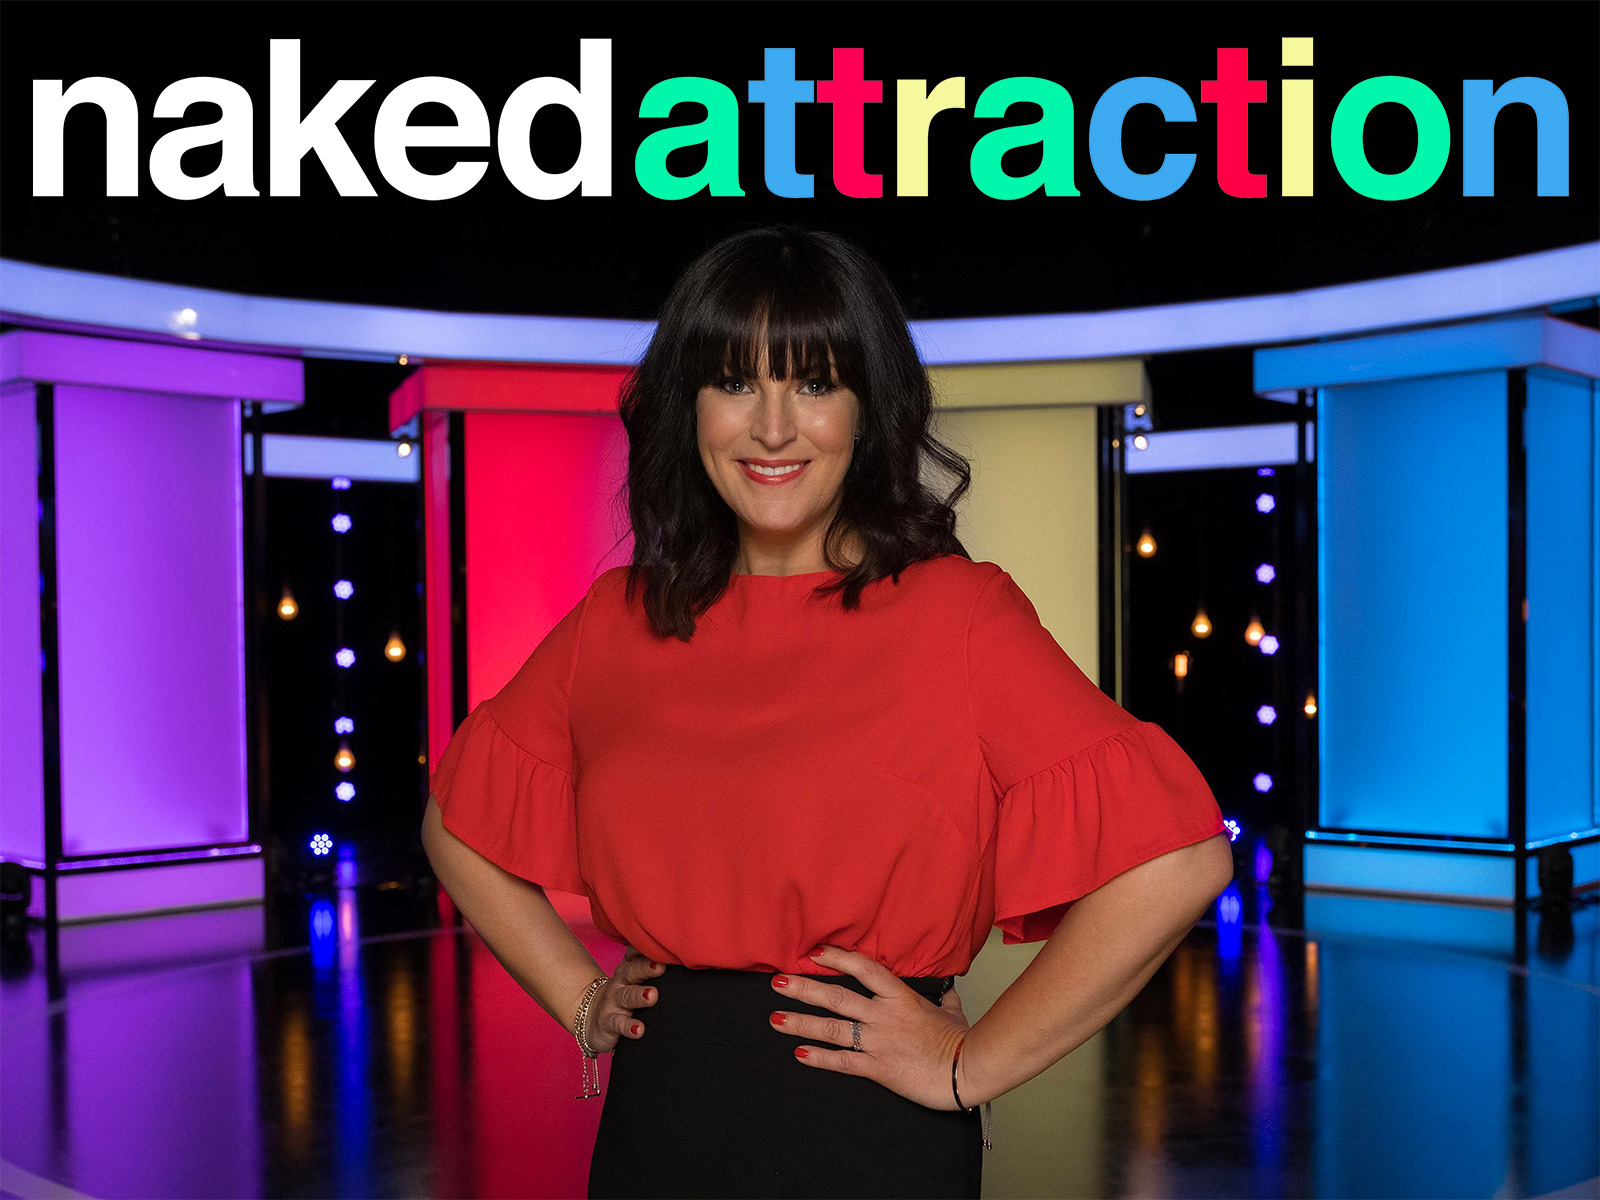 Prime Video: Naked Attraction - Season 4